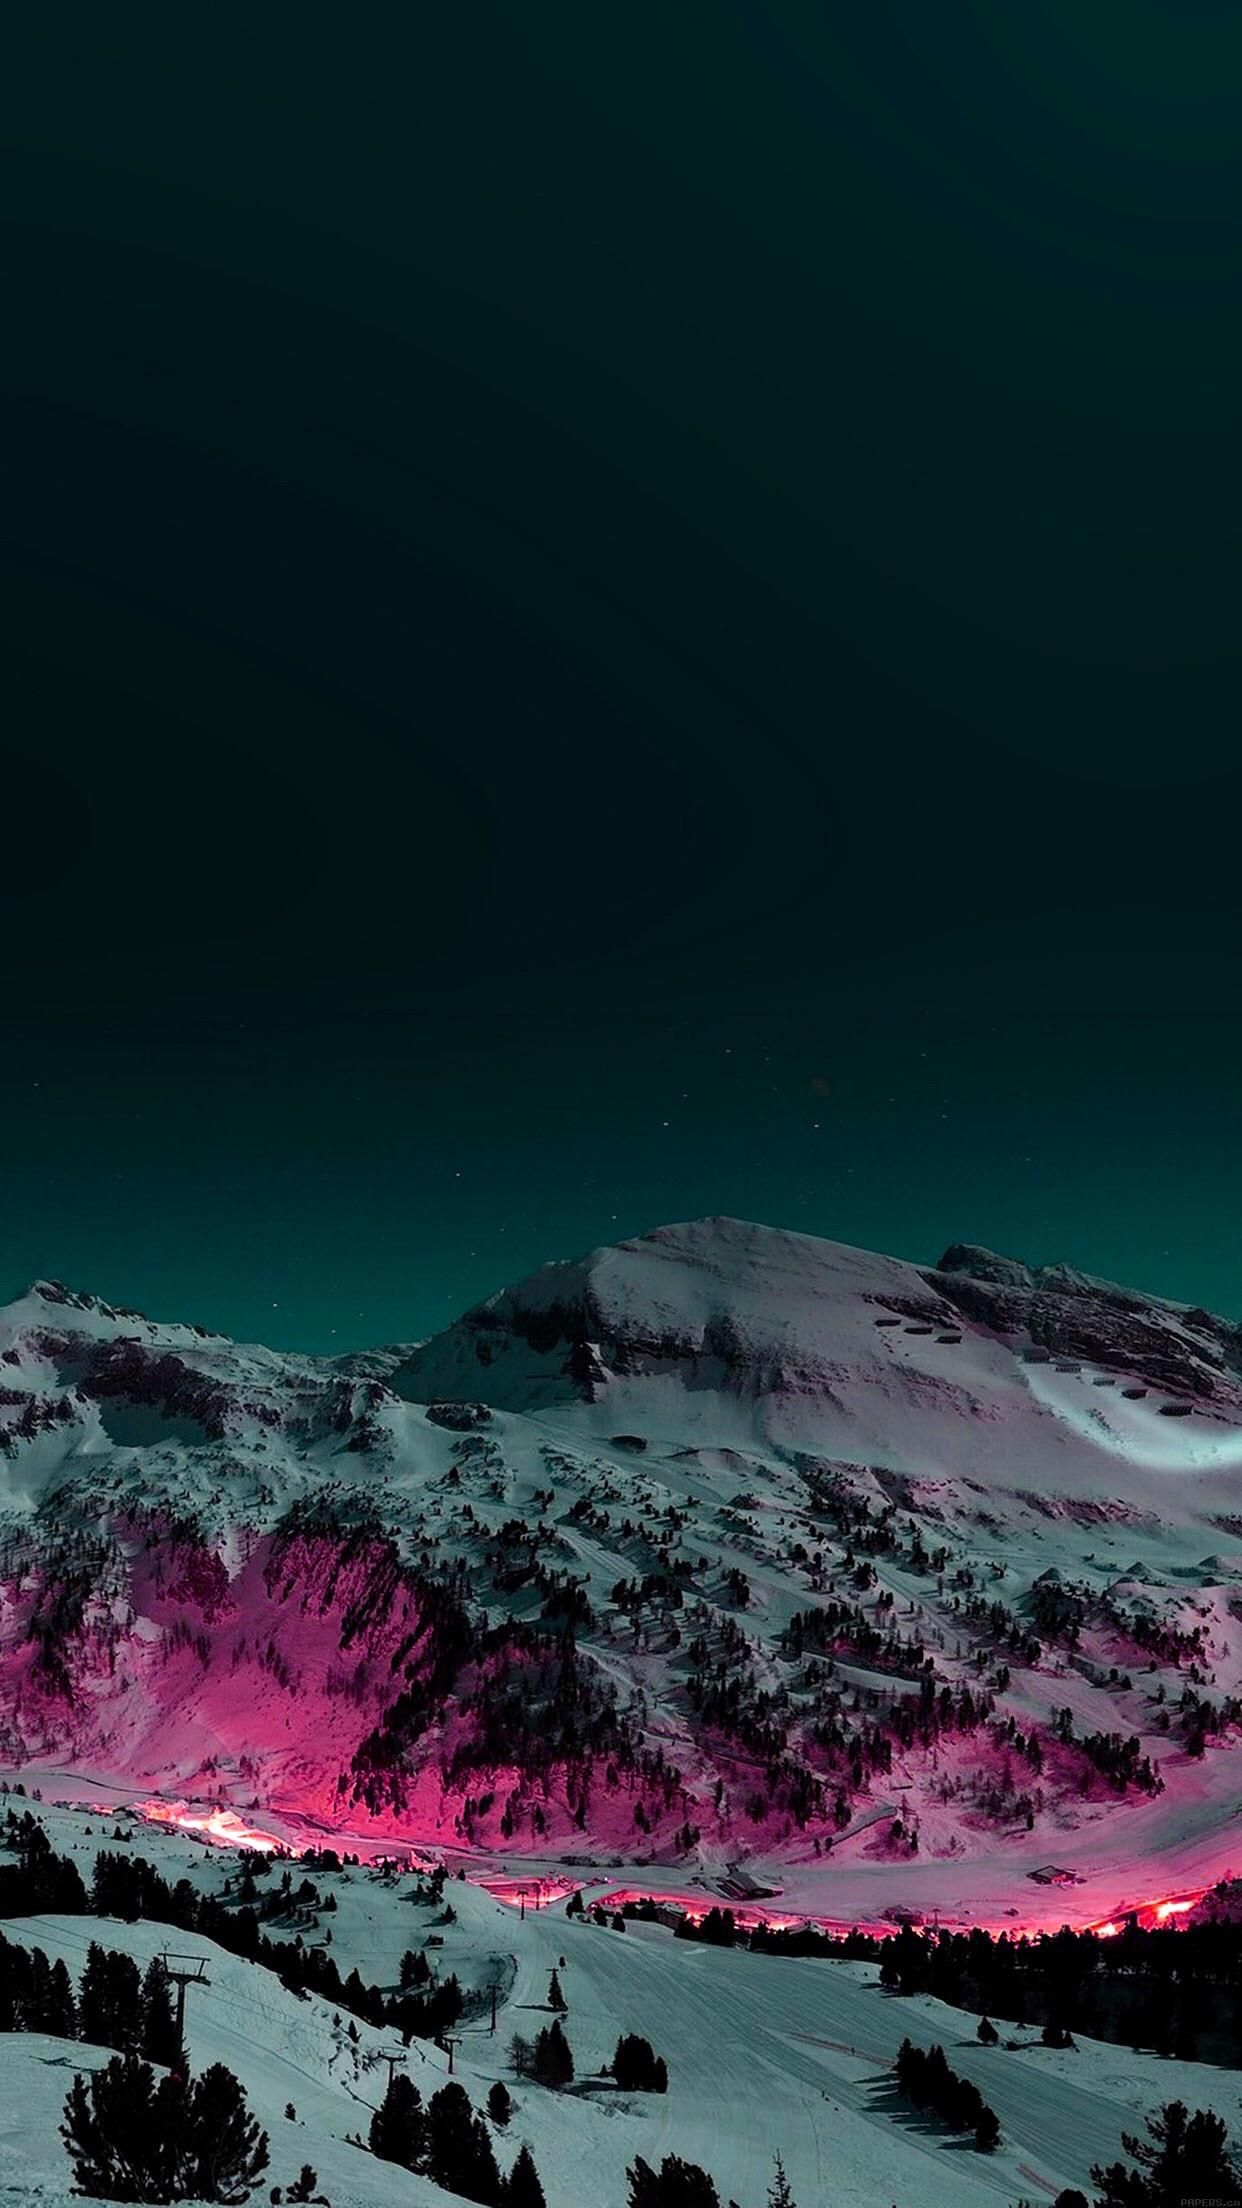 Mountains Hd cool wallpapers, Iphone wallpaper landscape